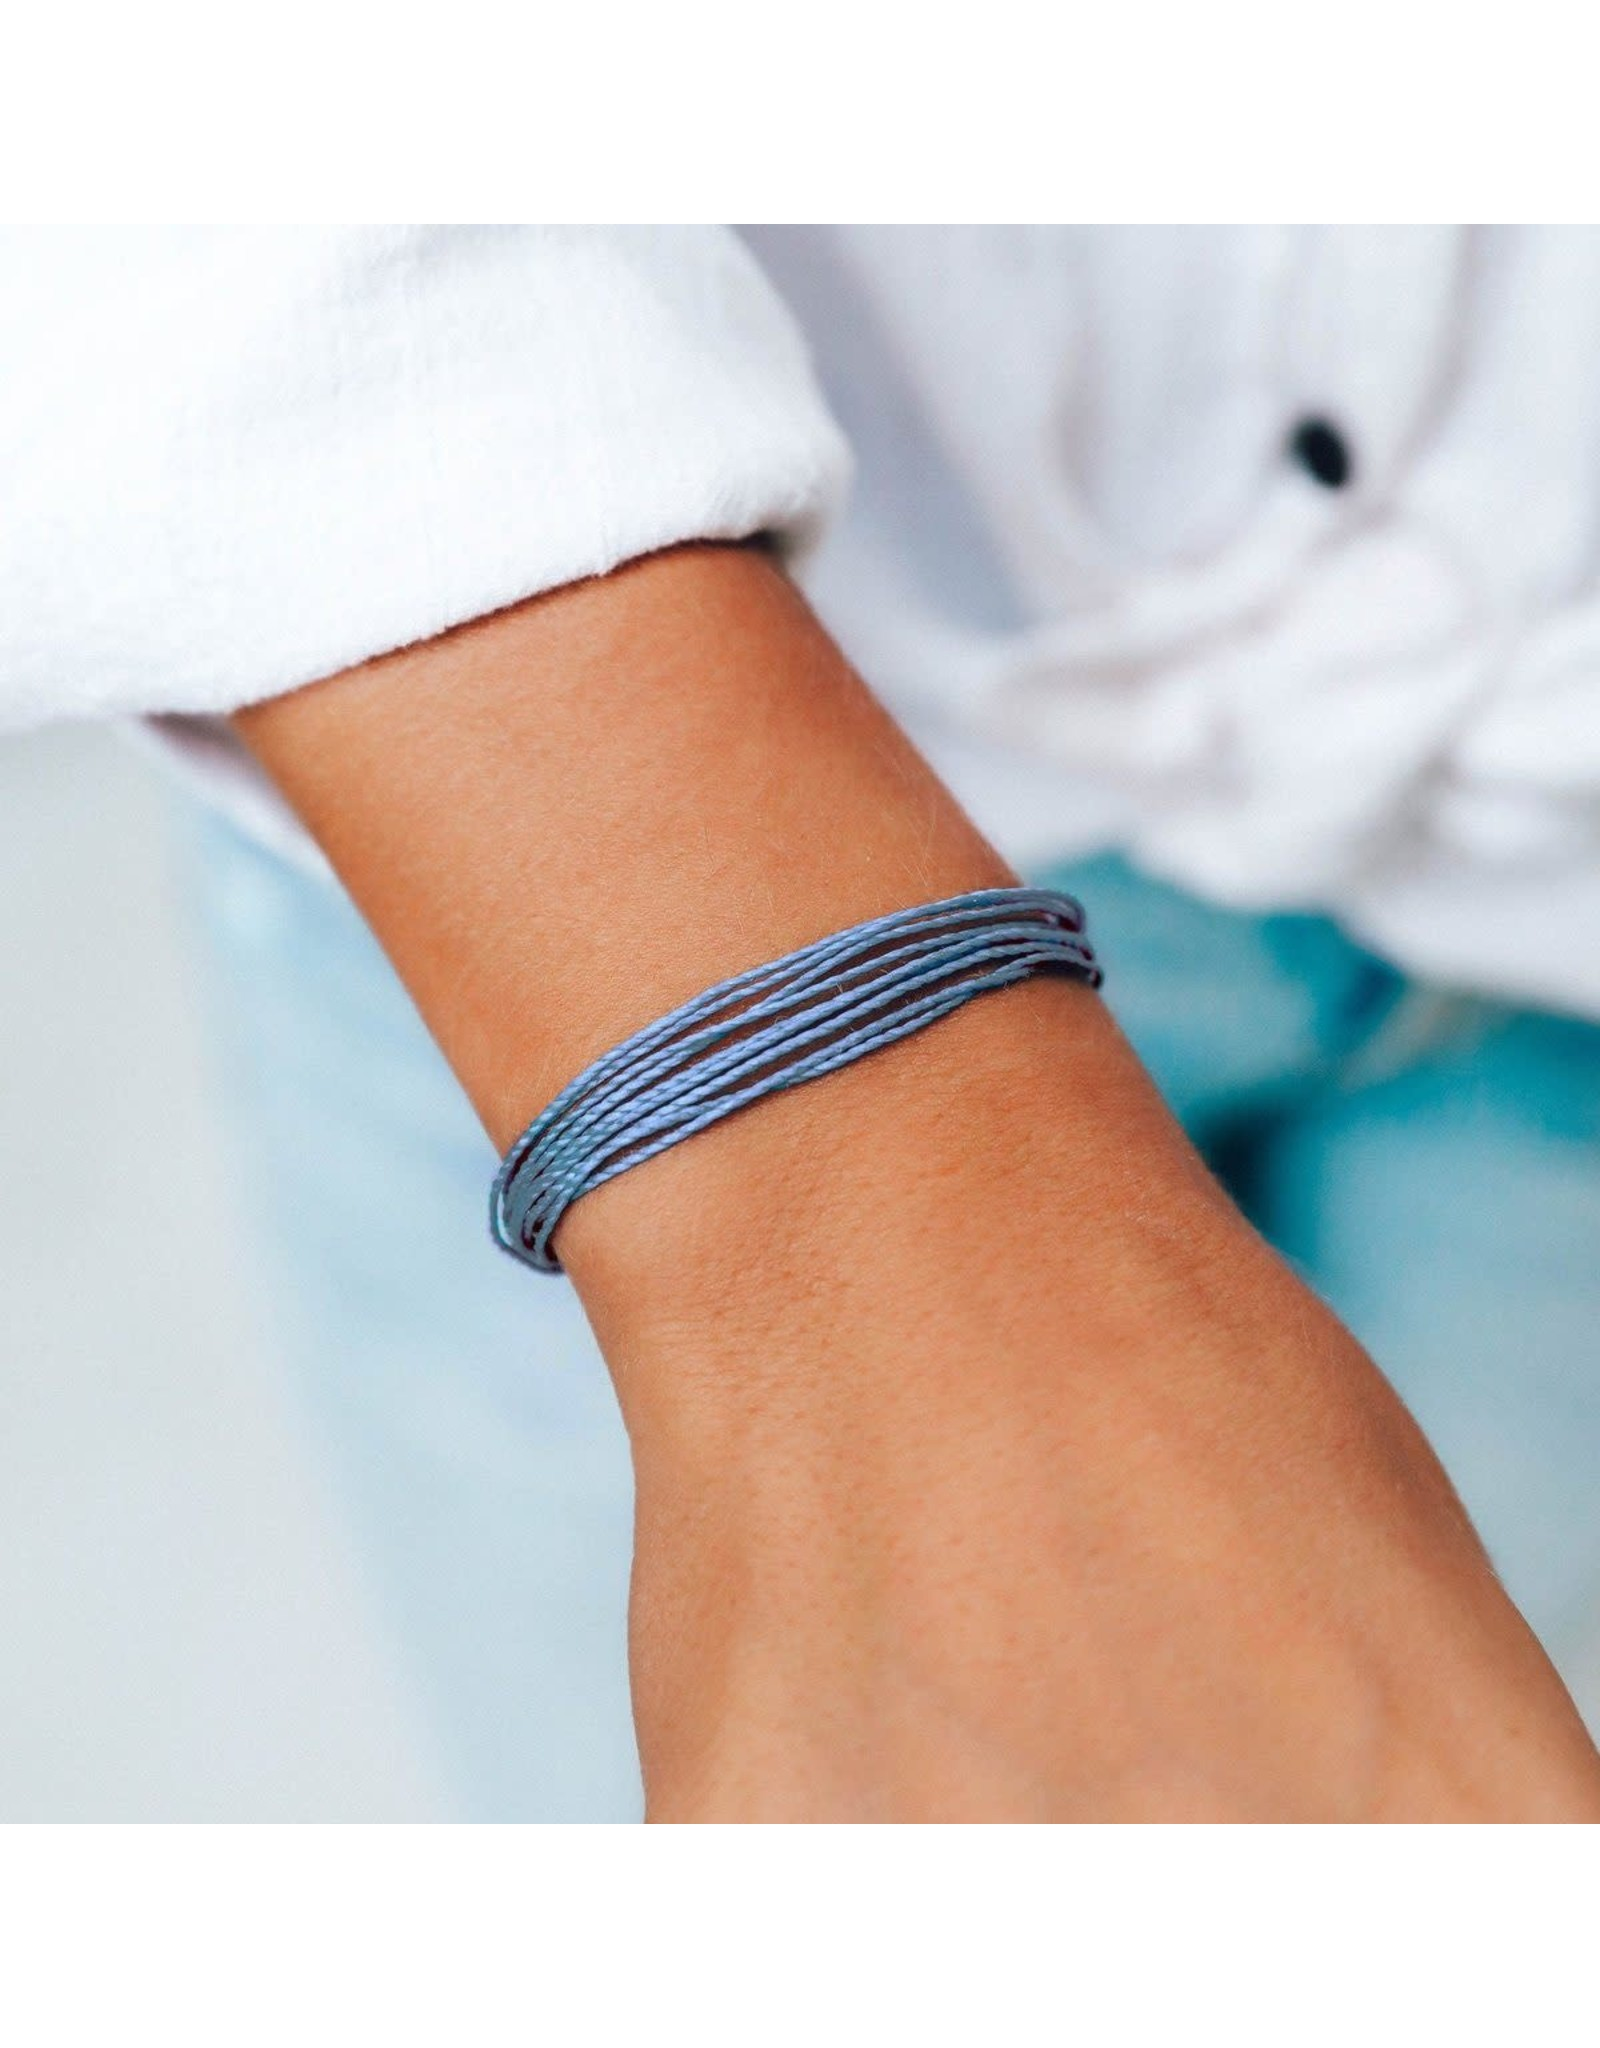 Pura Vida Charity, Anxiety Disorder Awareness